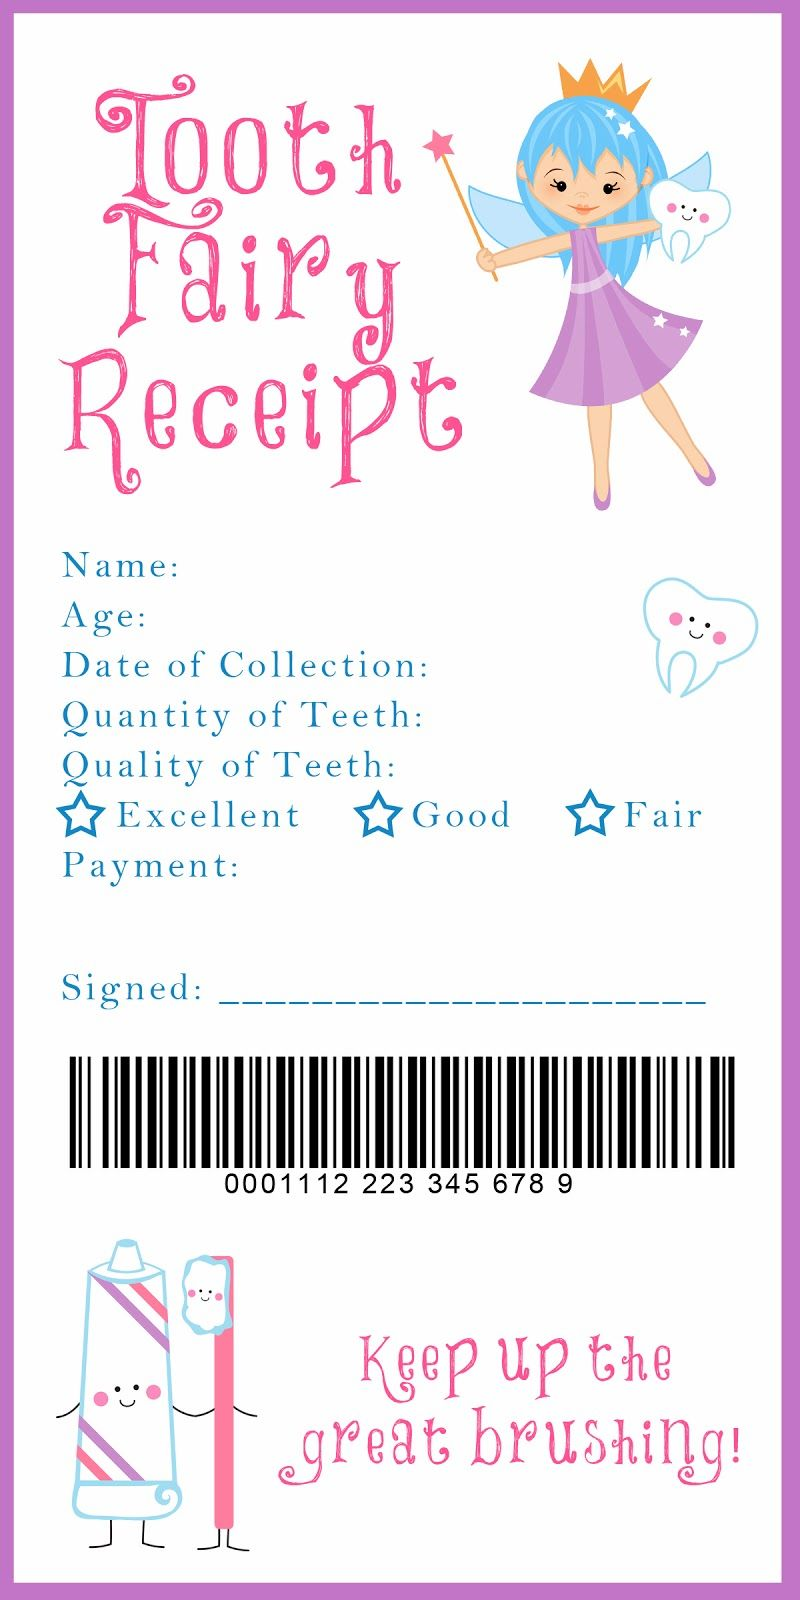 graphic about Tooth Fairy Letter Printable titled Teeth Fairy Receipt and countless other remarkable printables Little one